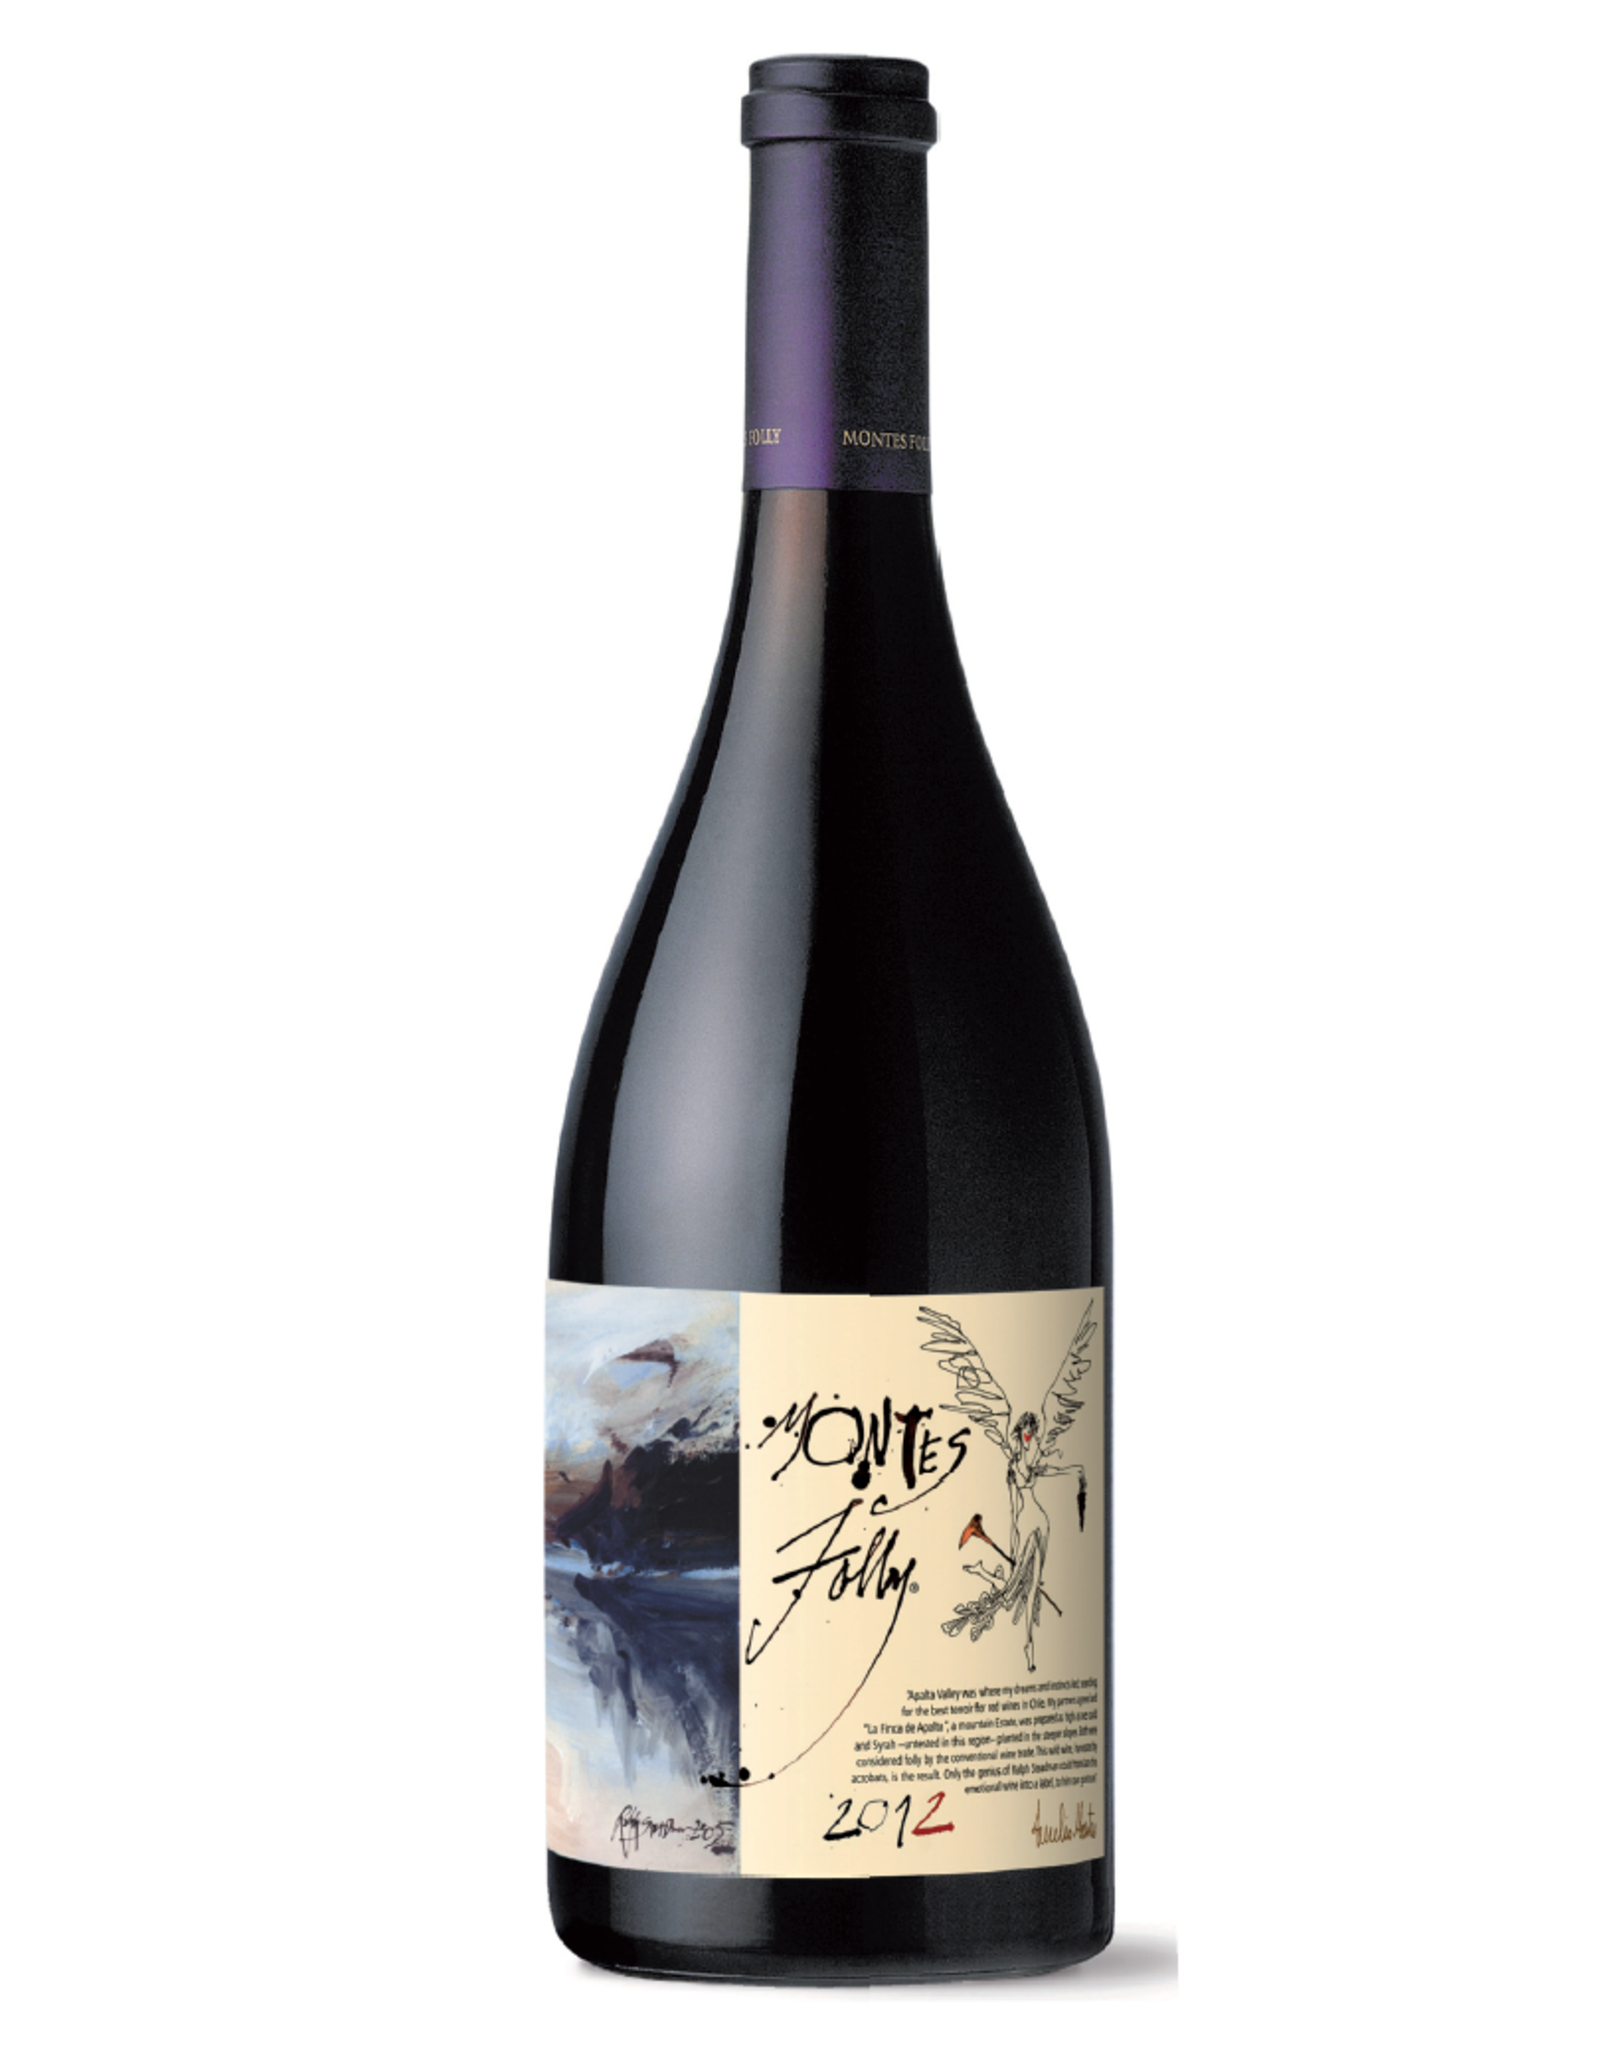 Montes Folly Syrah 2012